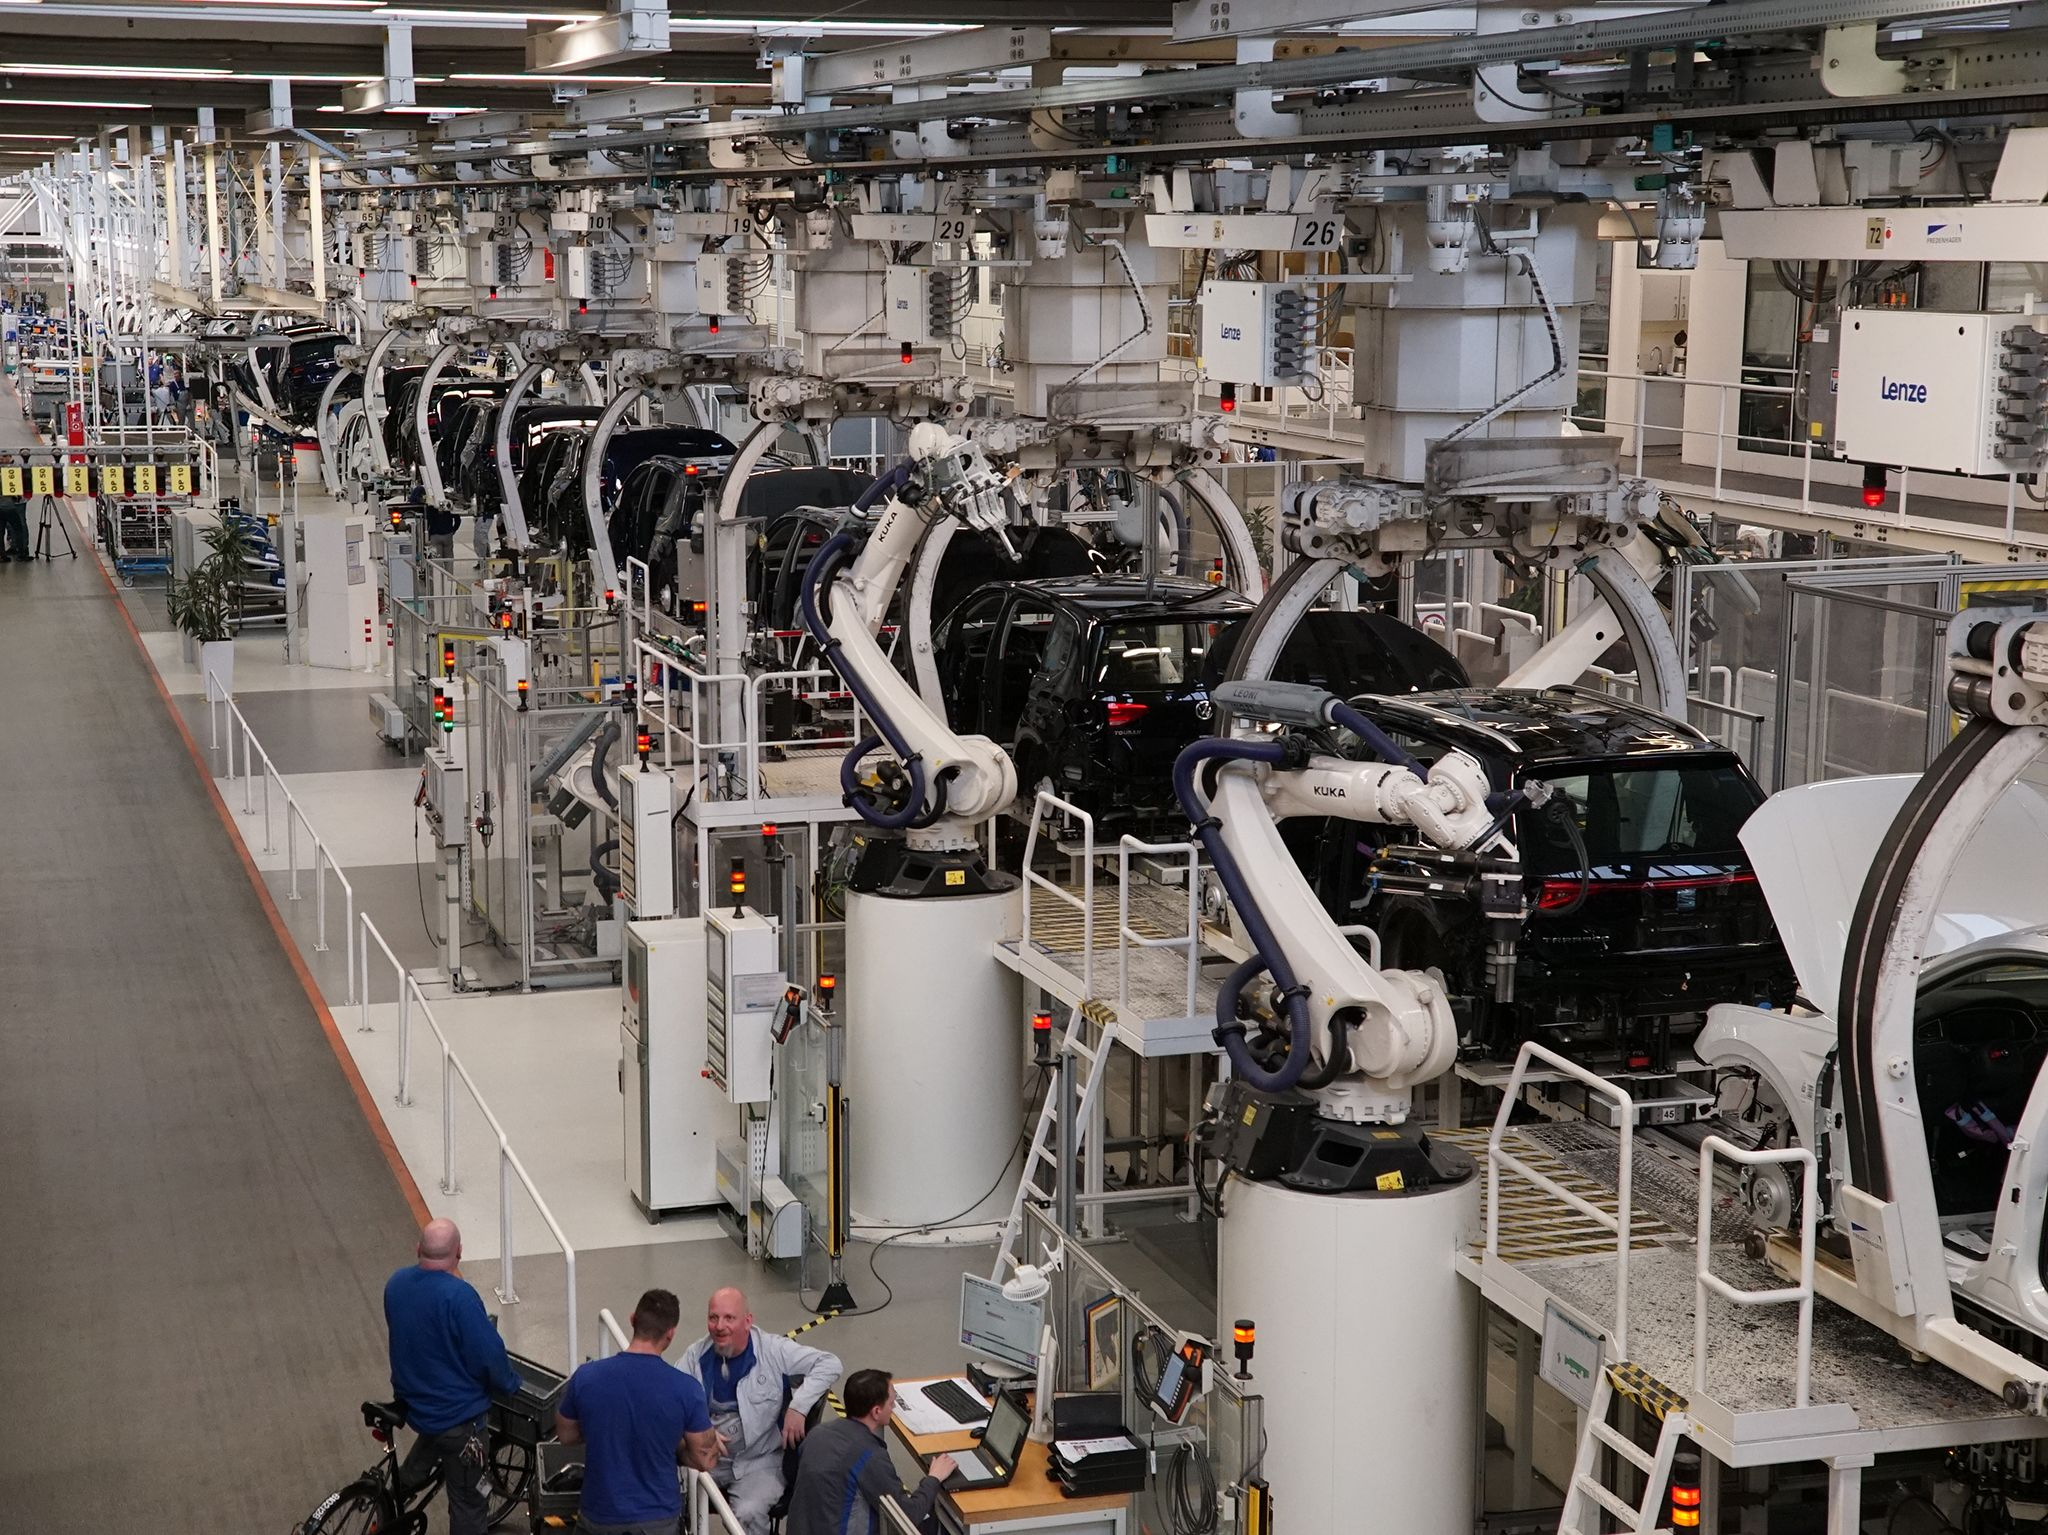 The Volkswagen production line. This image is from Superstructures: Engineering Marvels. [Photo of the day - May 2020]